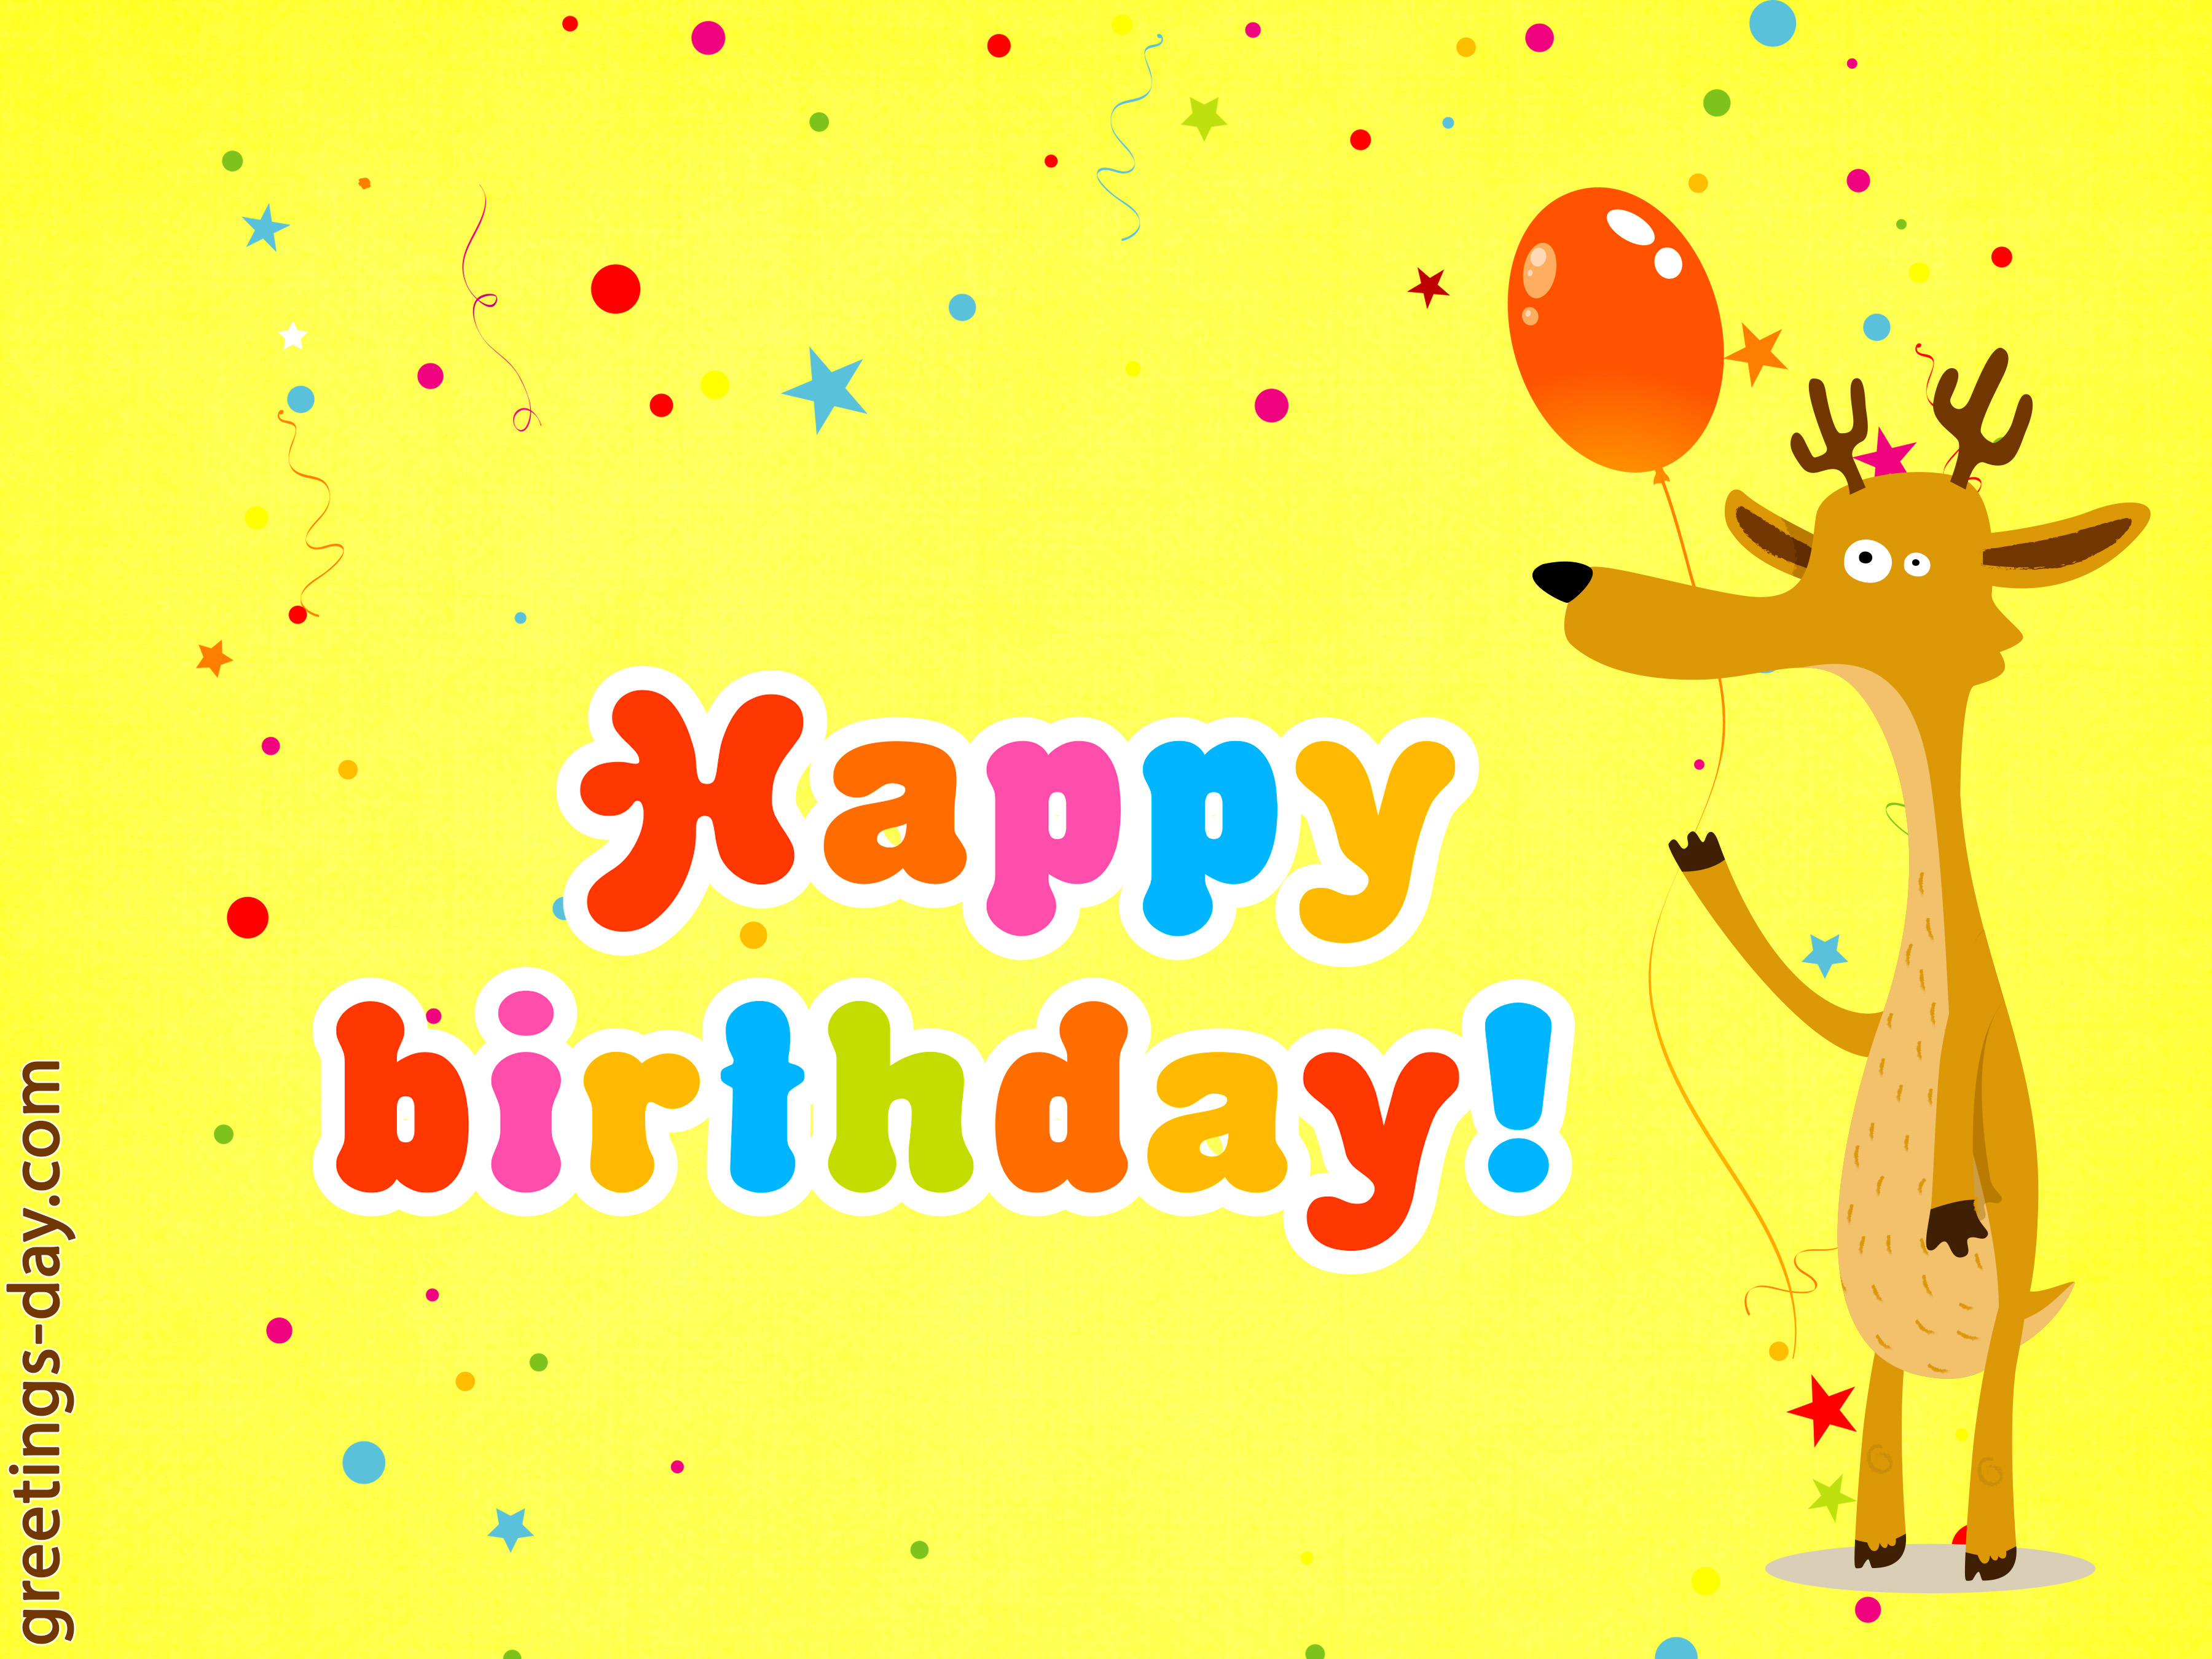 Happy Birthday Greeting Cards Share Image To You Friend On Birthday